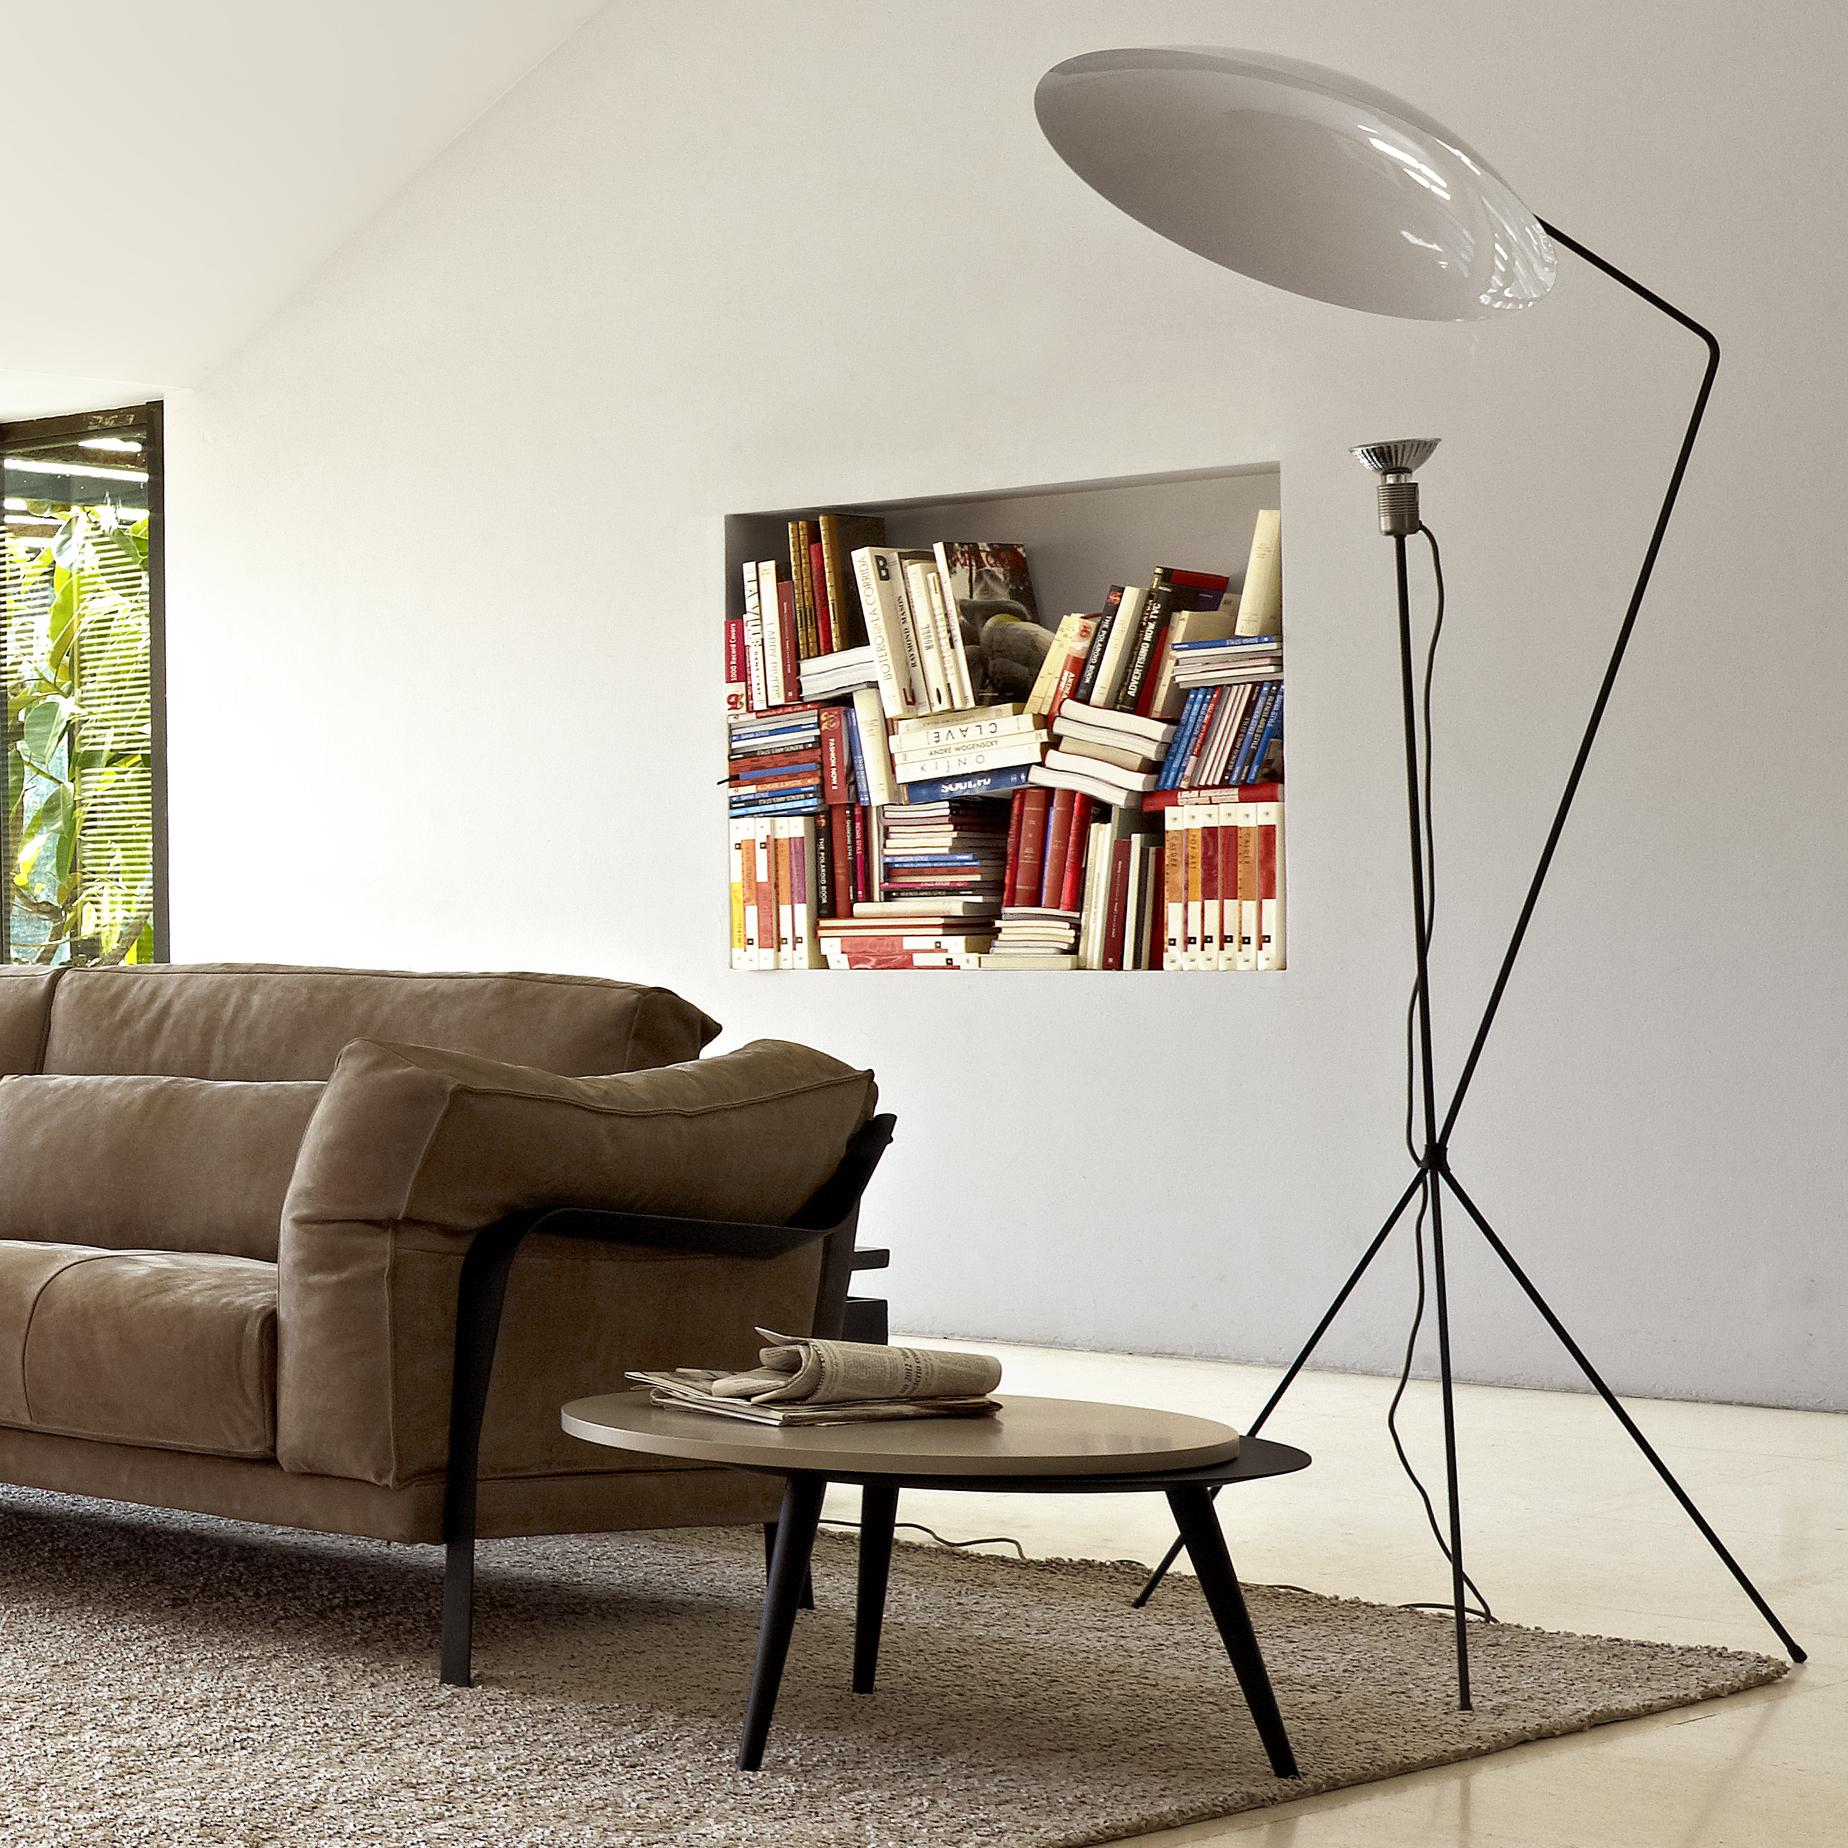 solveig floor lamps designer avril de pastre ligne roset. Black Bedroom Furniture Sets. Home Design Ideas